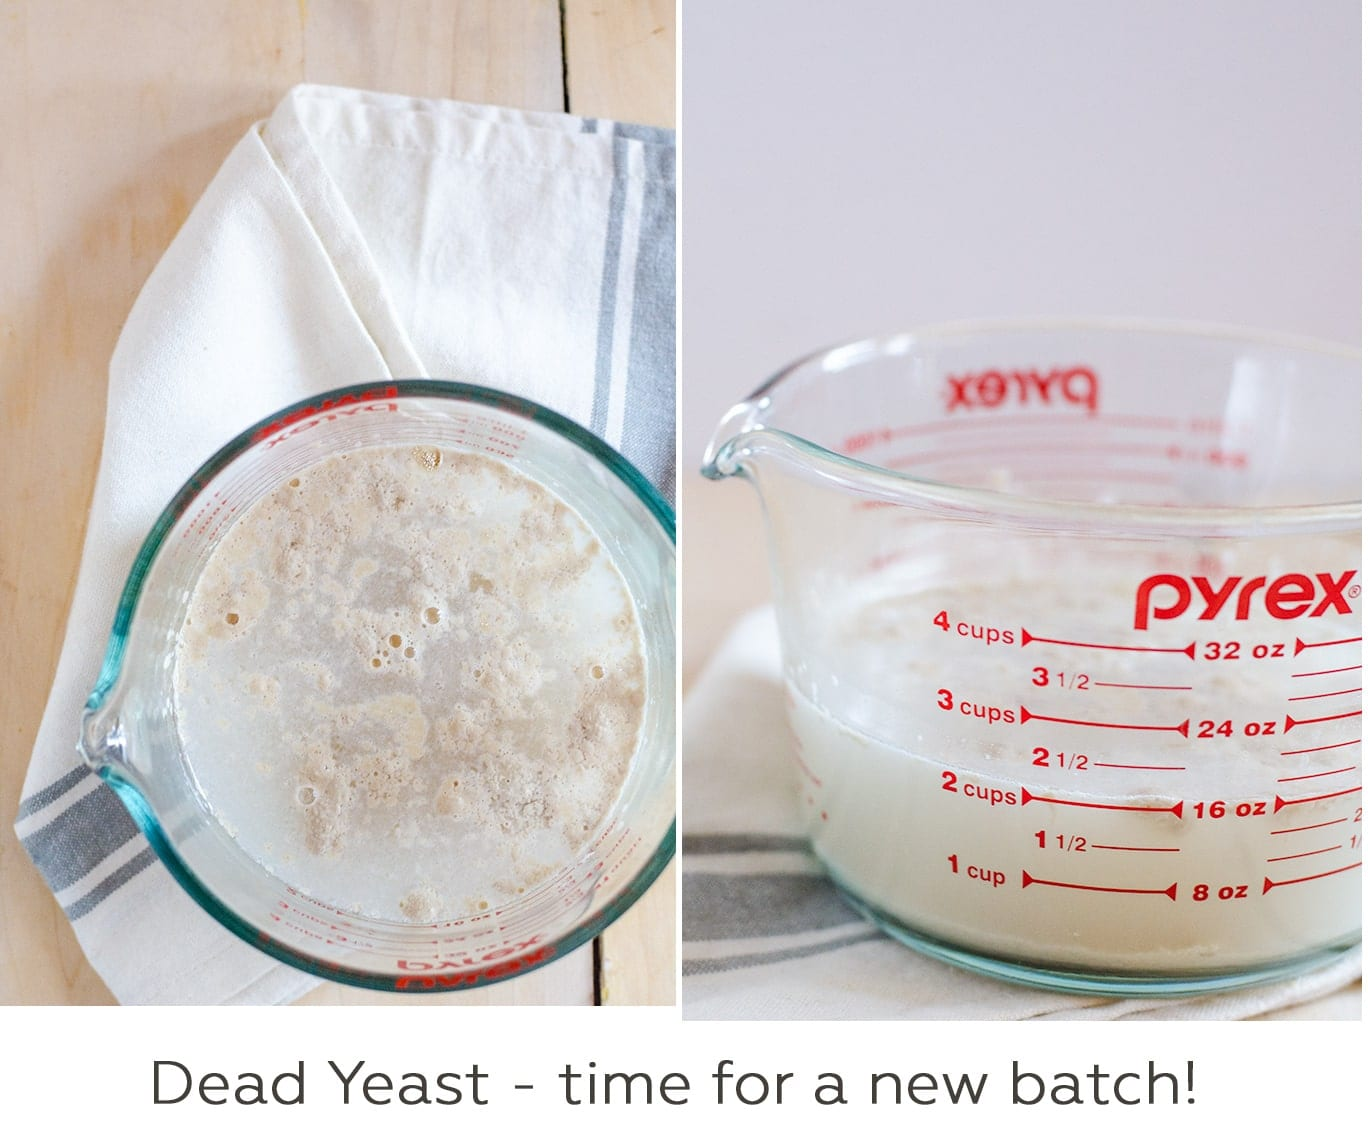 If after 10 minutes your yeast still looks like this, then your yeast is dead and you need a fresh batch